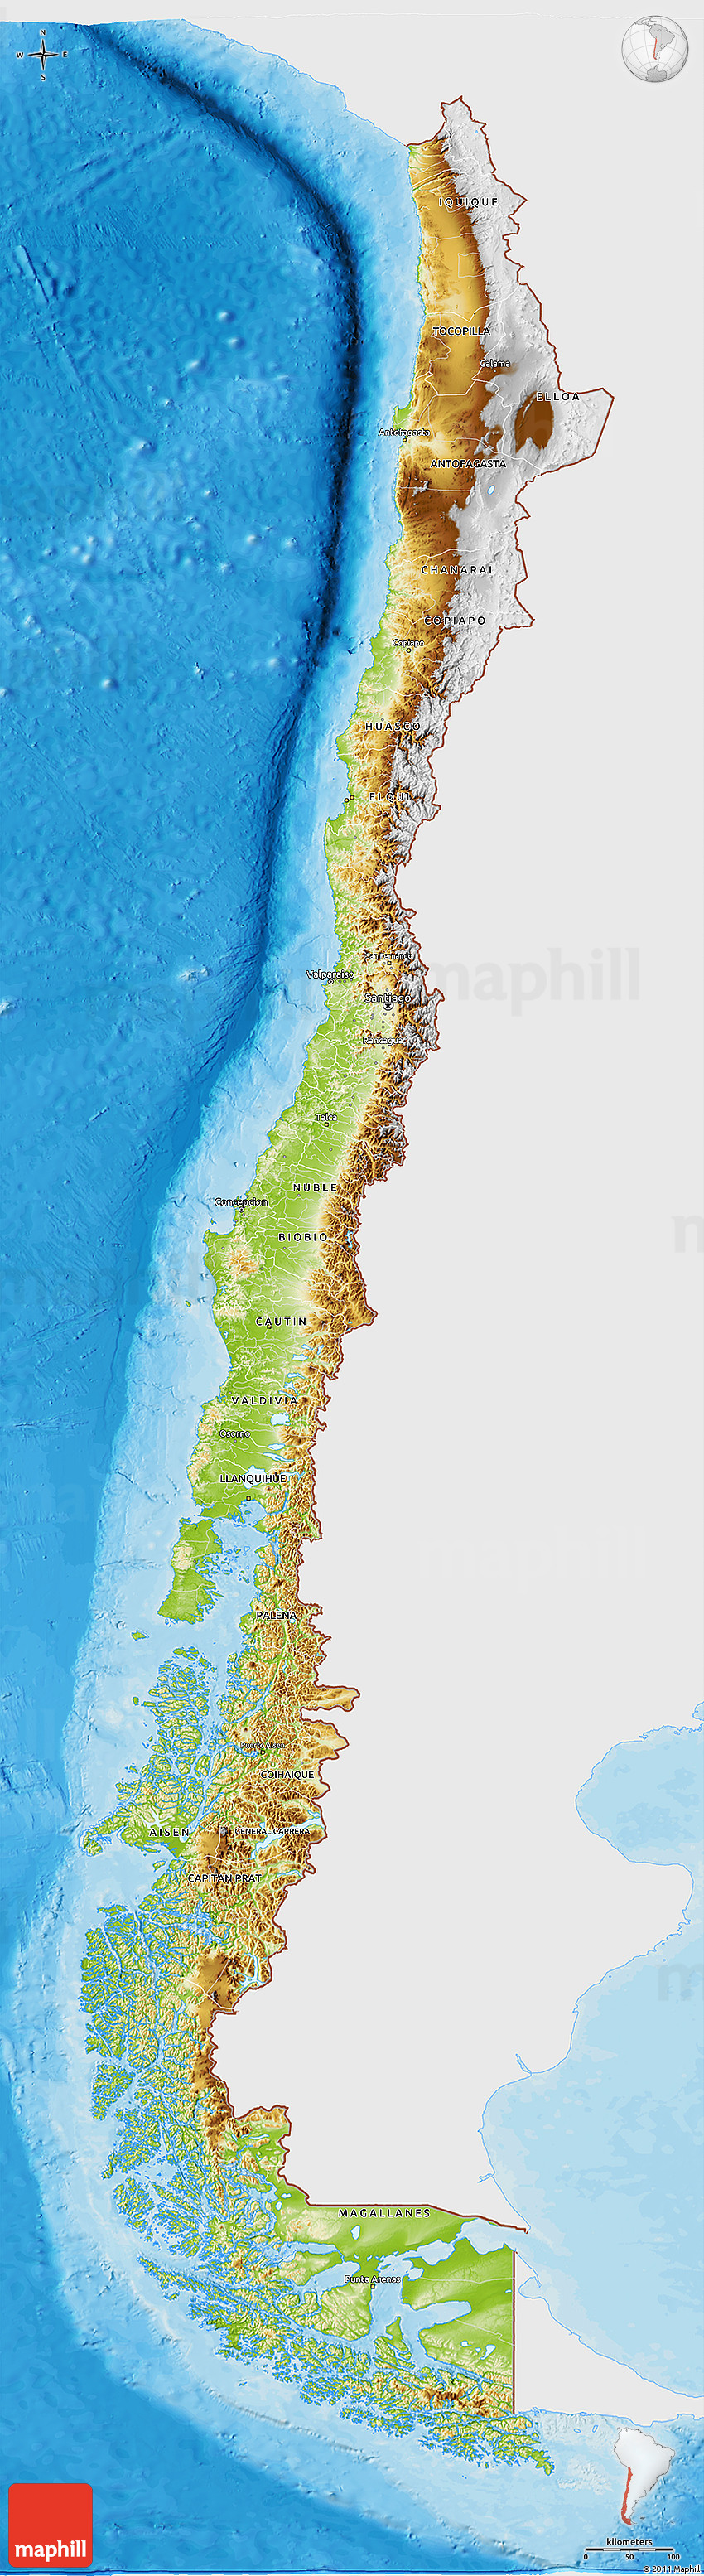 Topographic Map Of Chile By Maphill Country Map Art